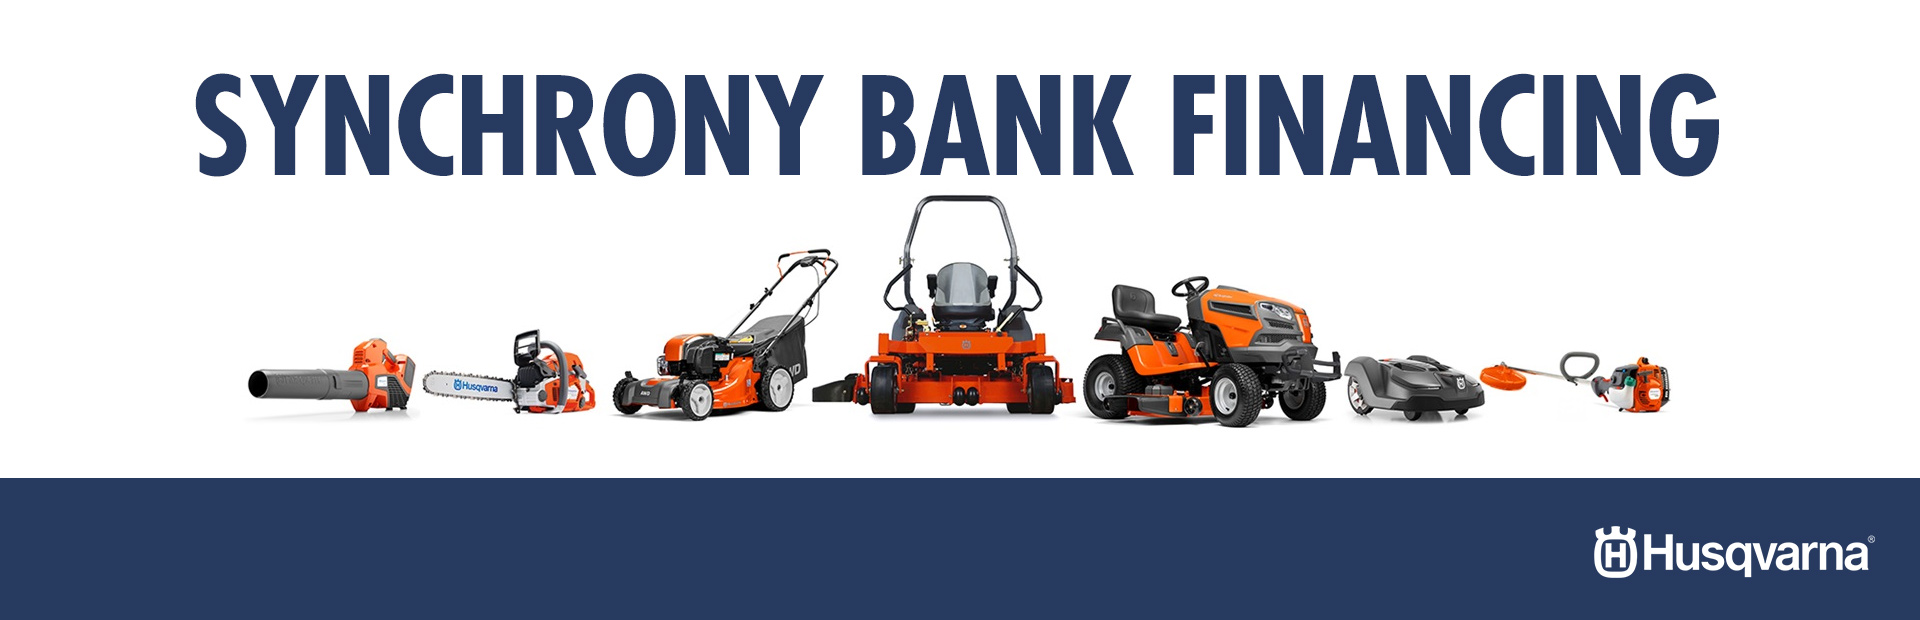 Husqvarna: Synchrony Bank Financing Offers